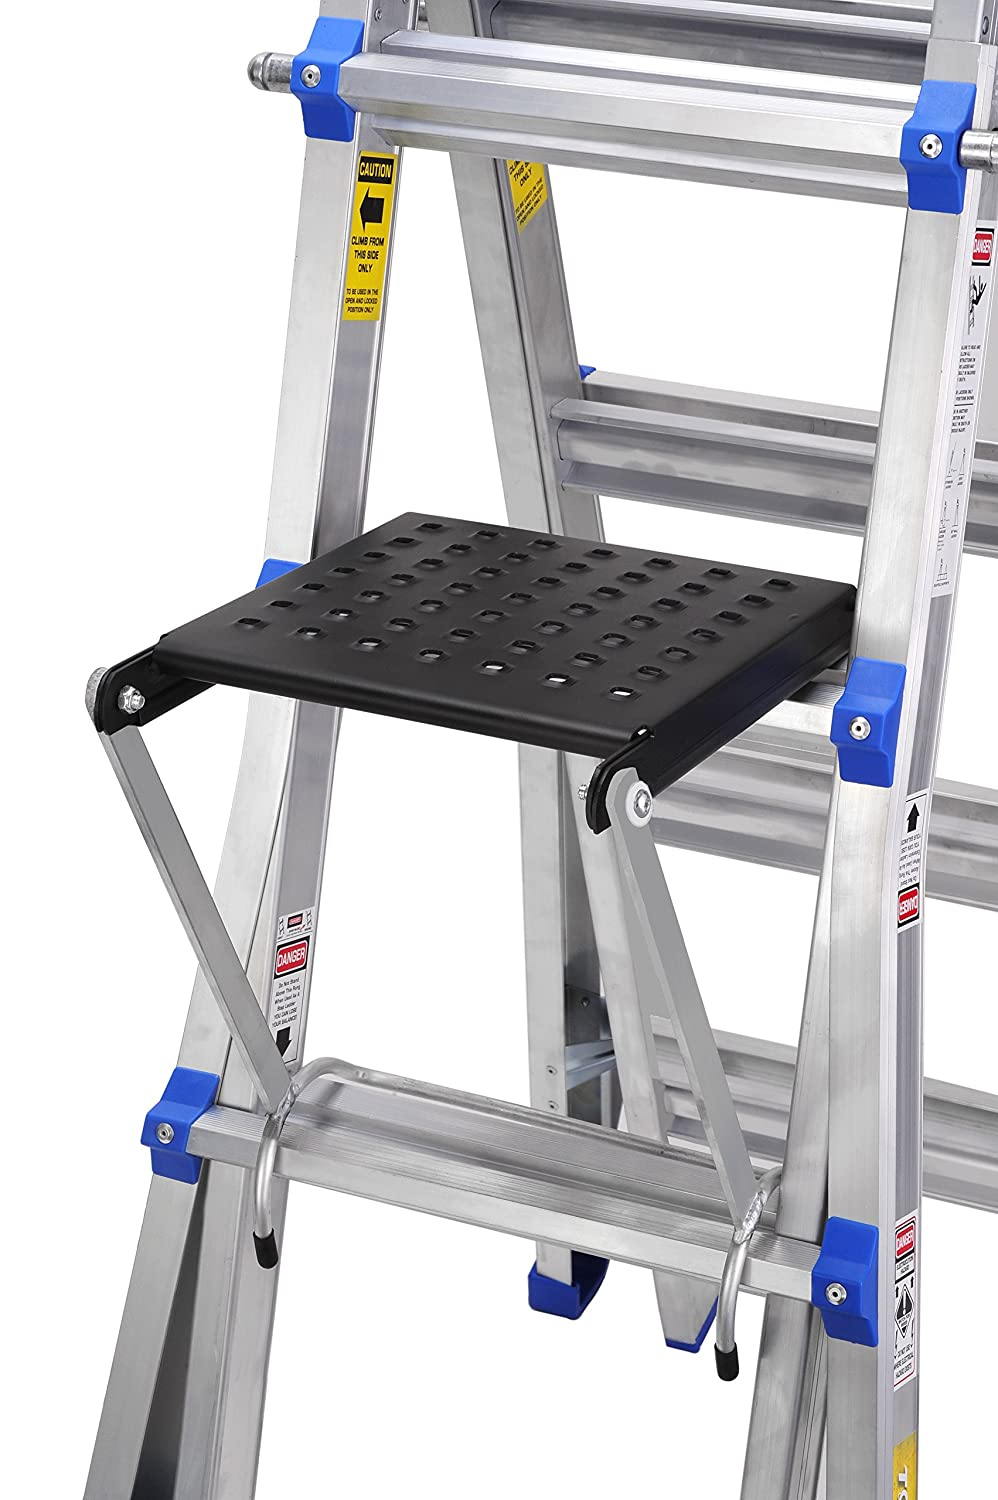 "TOPRUNG 16""x15"" Work Platform for Ladders, Heavy Duty Ladder Accessory"